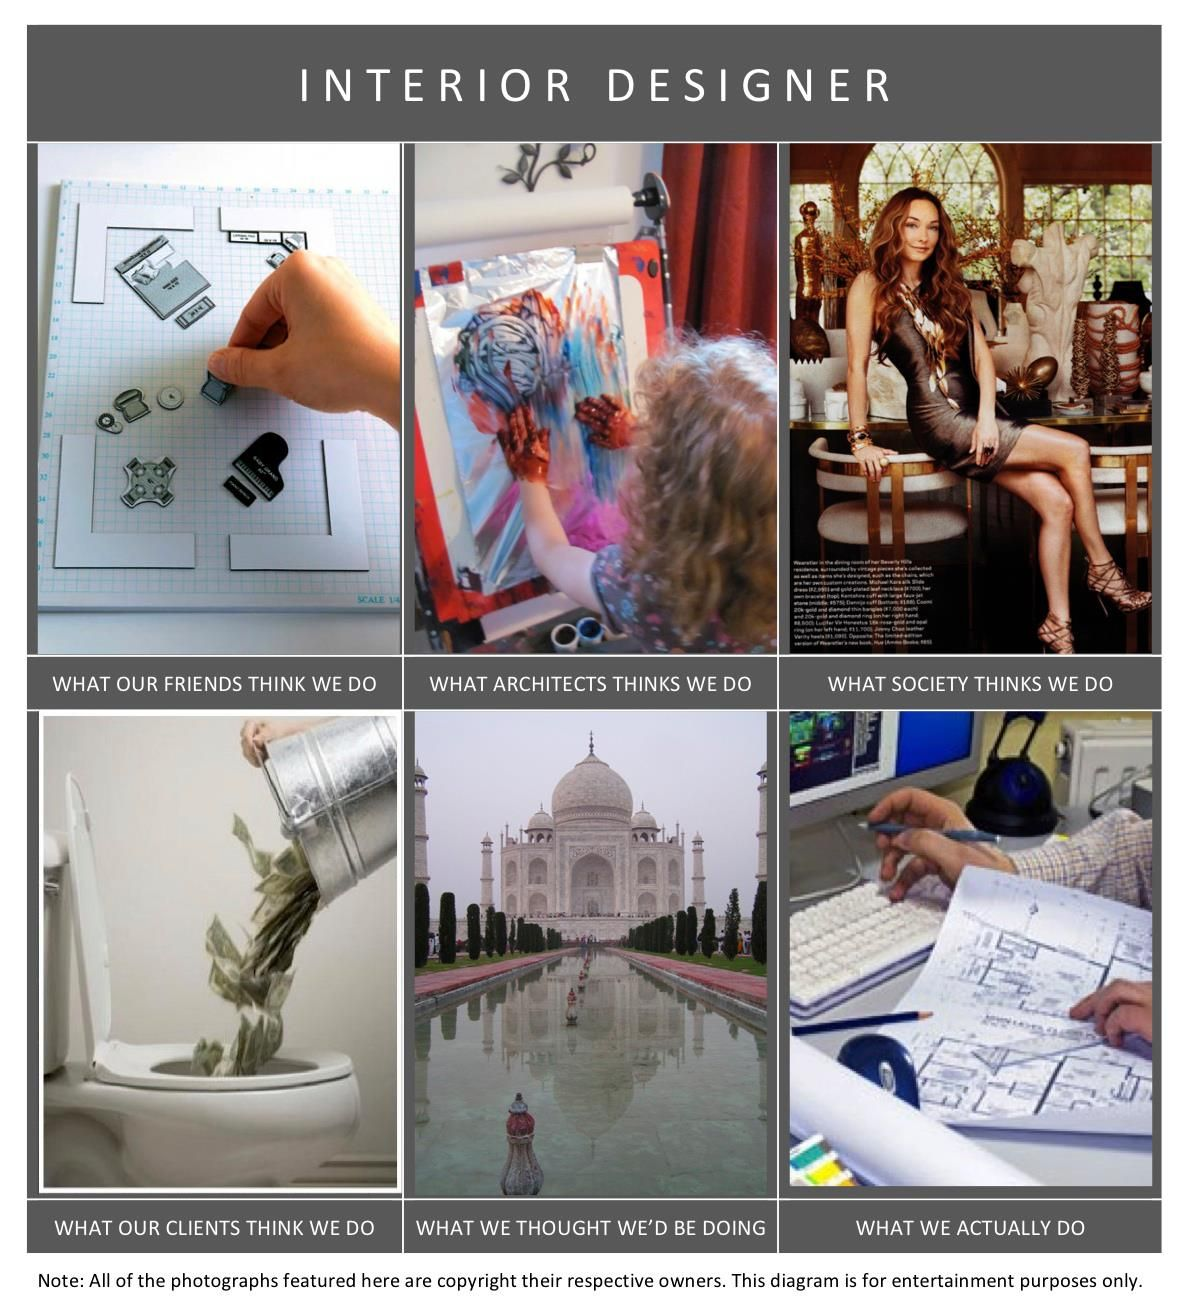 Interior Designer Meme Design Funnies Pinterest Meme